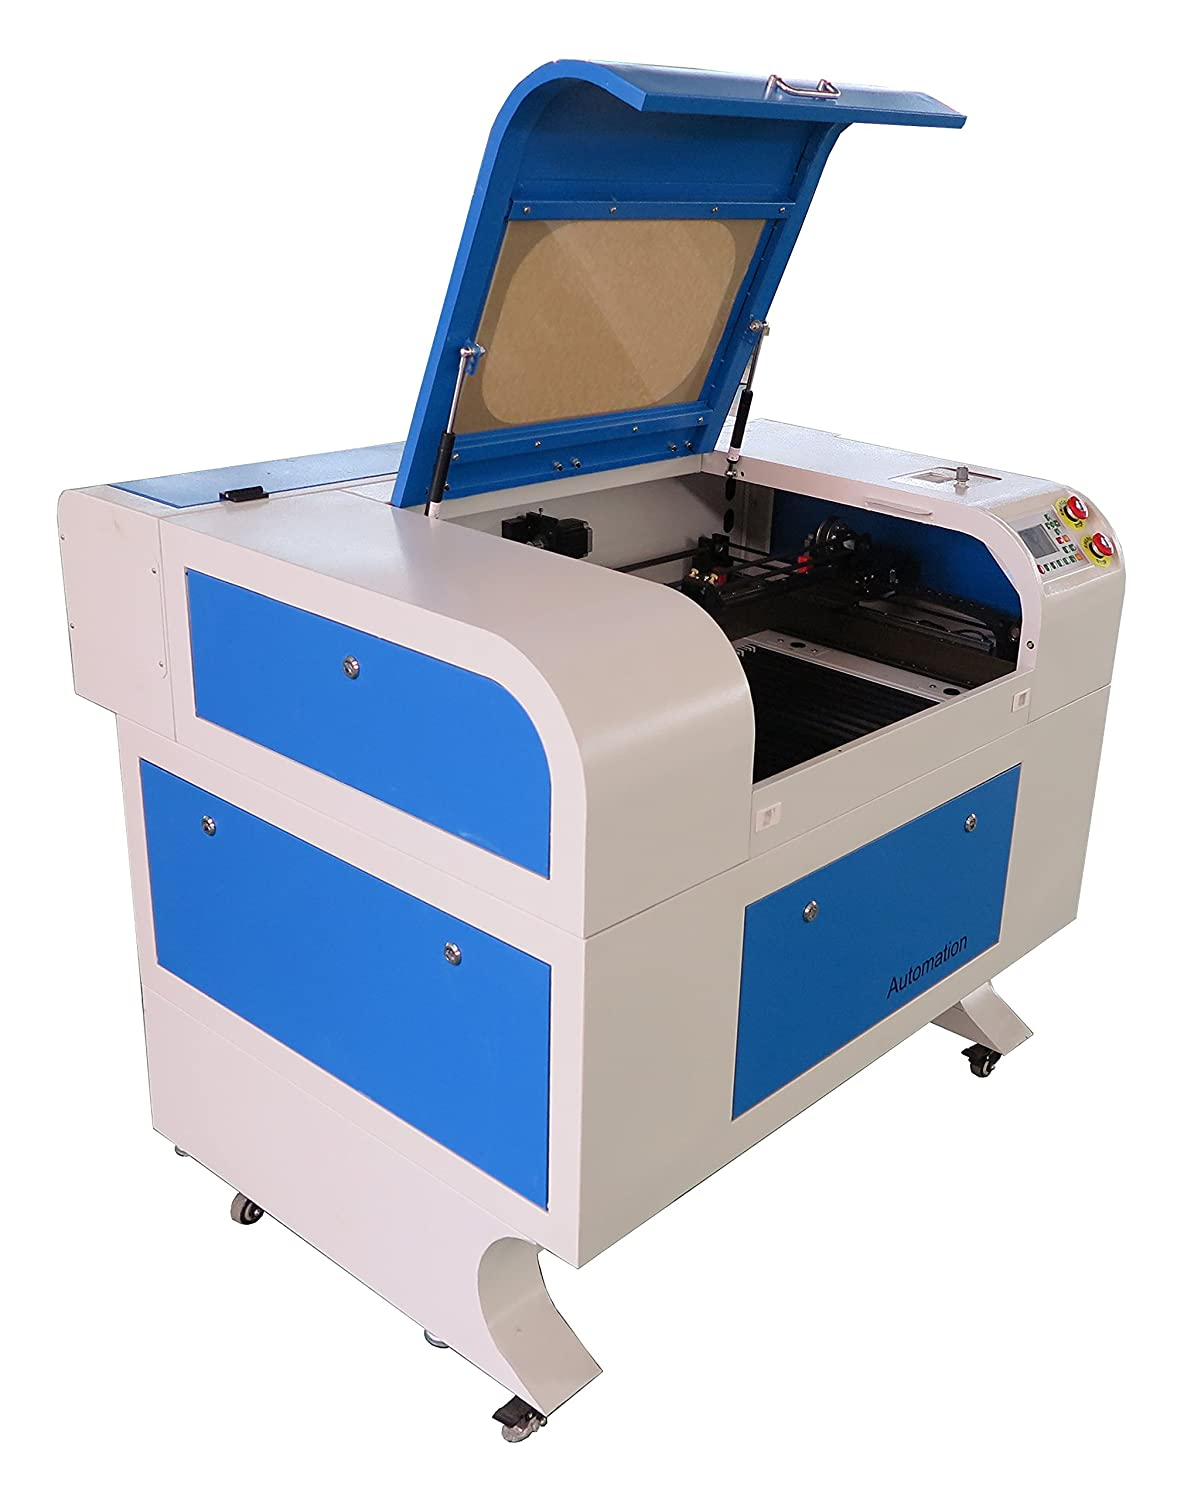 Amazon com: CO2 Laser Cutter and Engraver, Laser Machine 60W